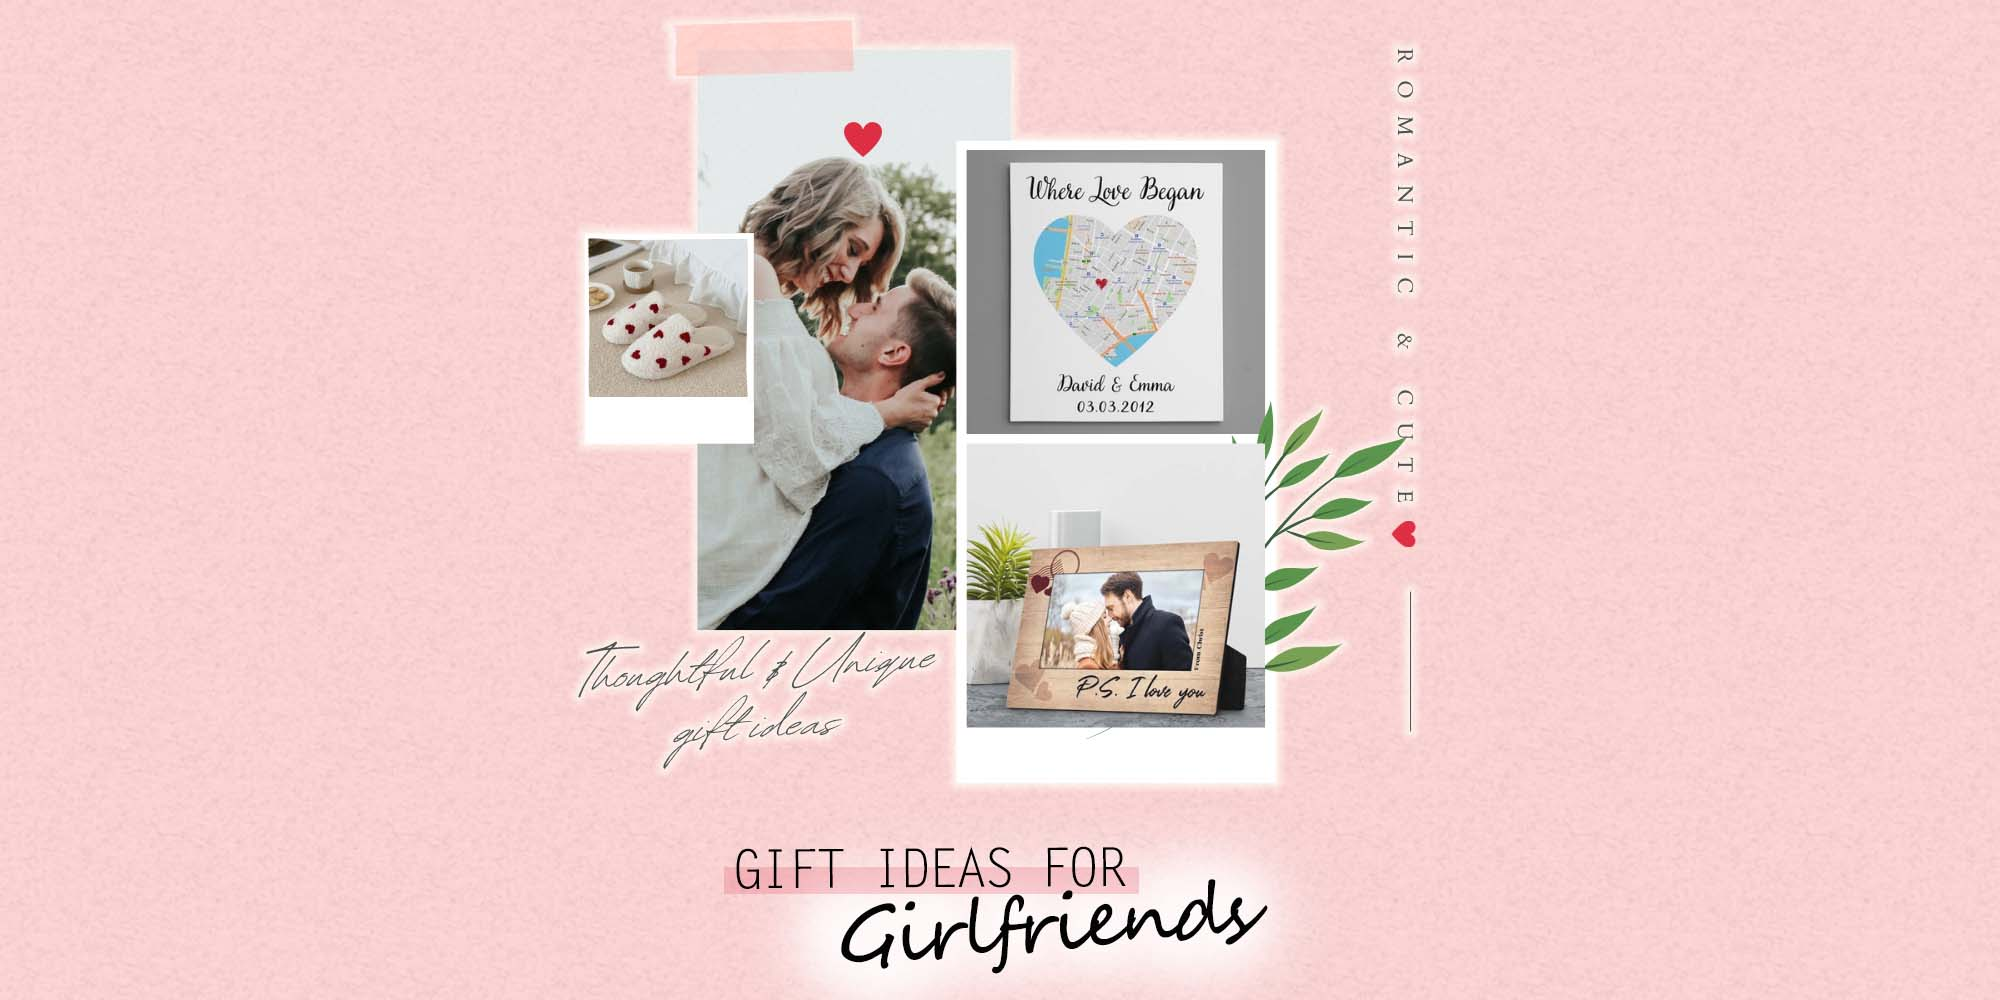 60+ Best Gifts For Your Girlfriend: Thoughtful & Unique Ideas (2021)